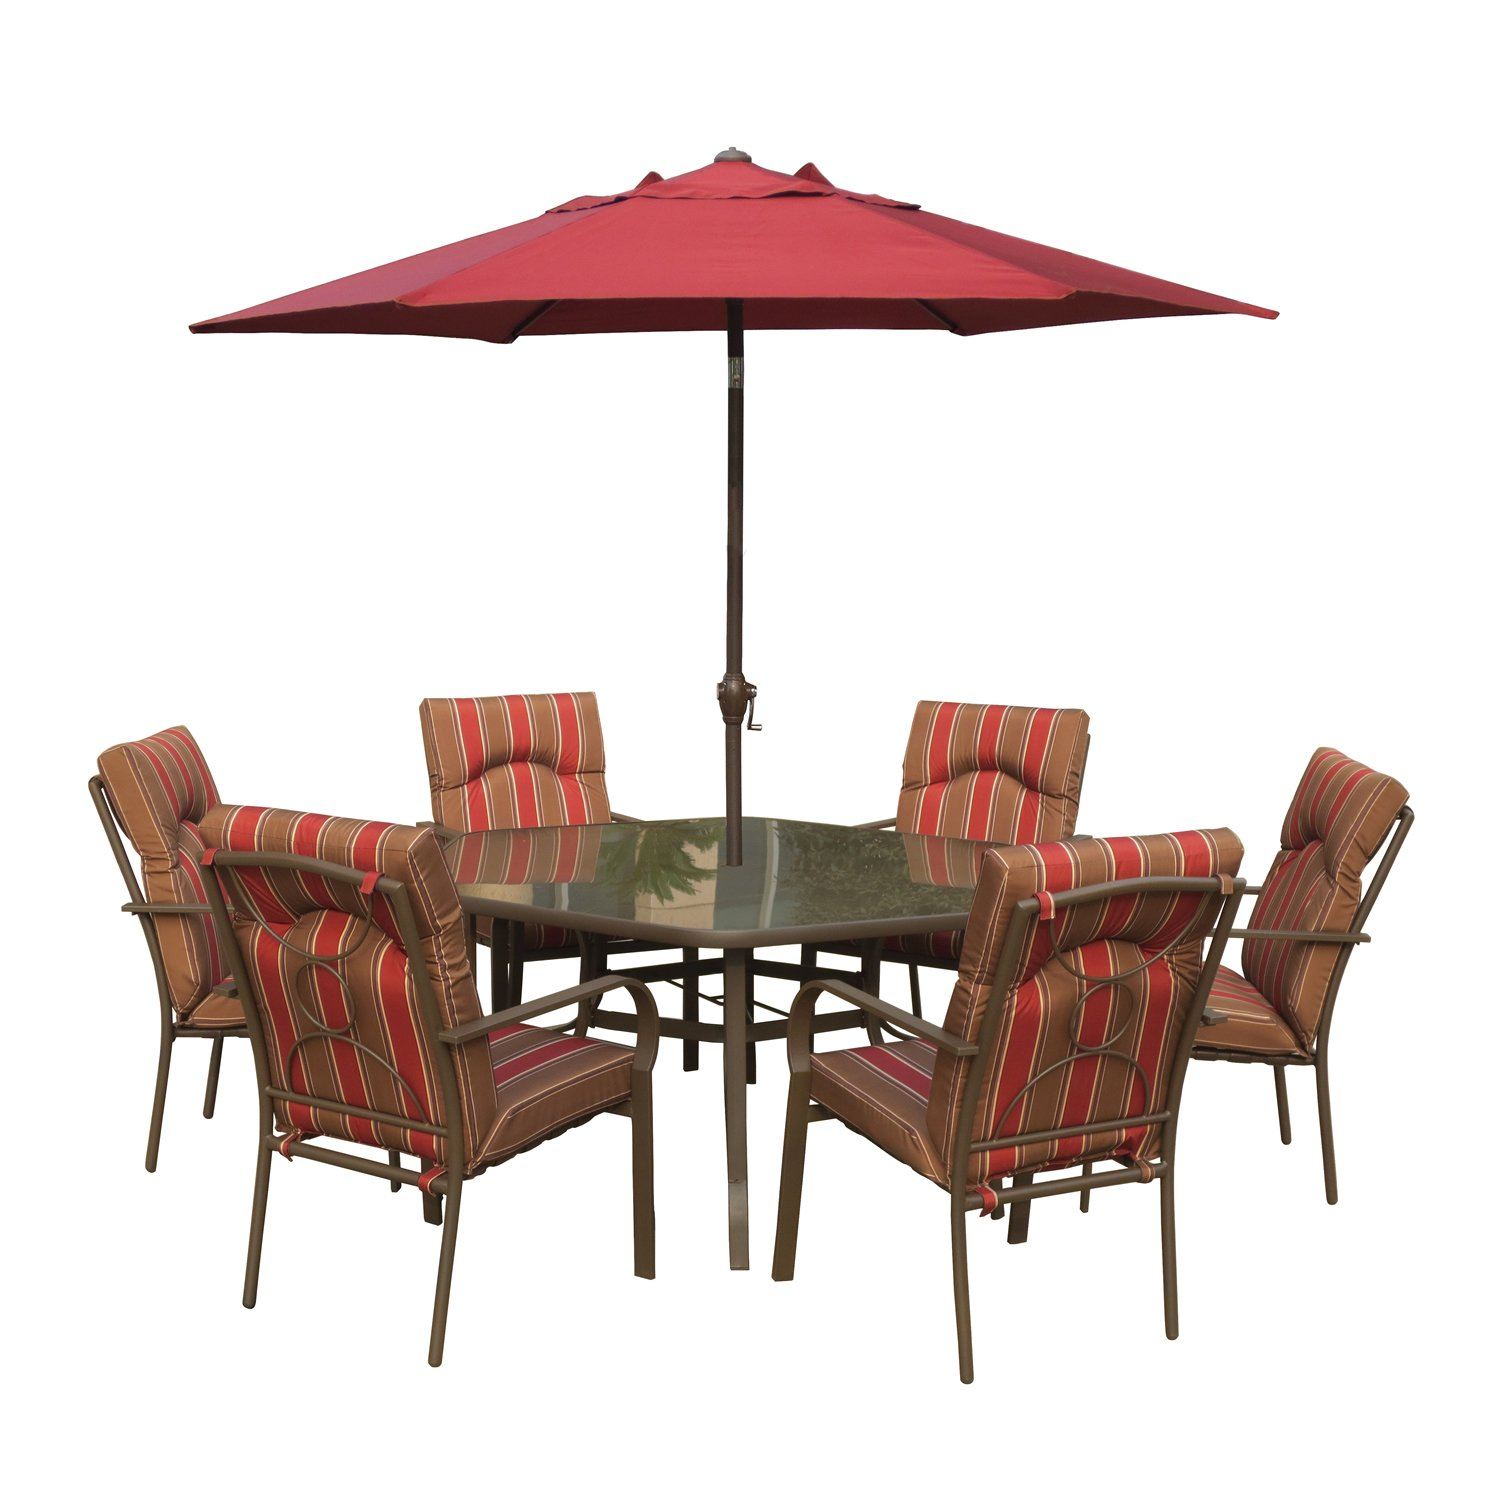 Amalfi Rectangular 6 Seater Dining Set With Parasol   Brown U0026 Red Metal  Garden Furniture Set   6 Seater Dining Set   Outdoor Patio Table And Chair  Set: ...